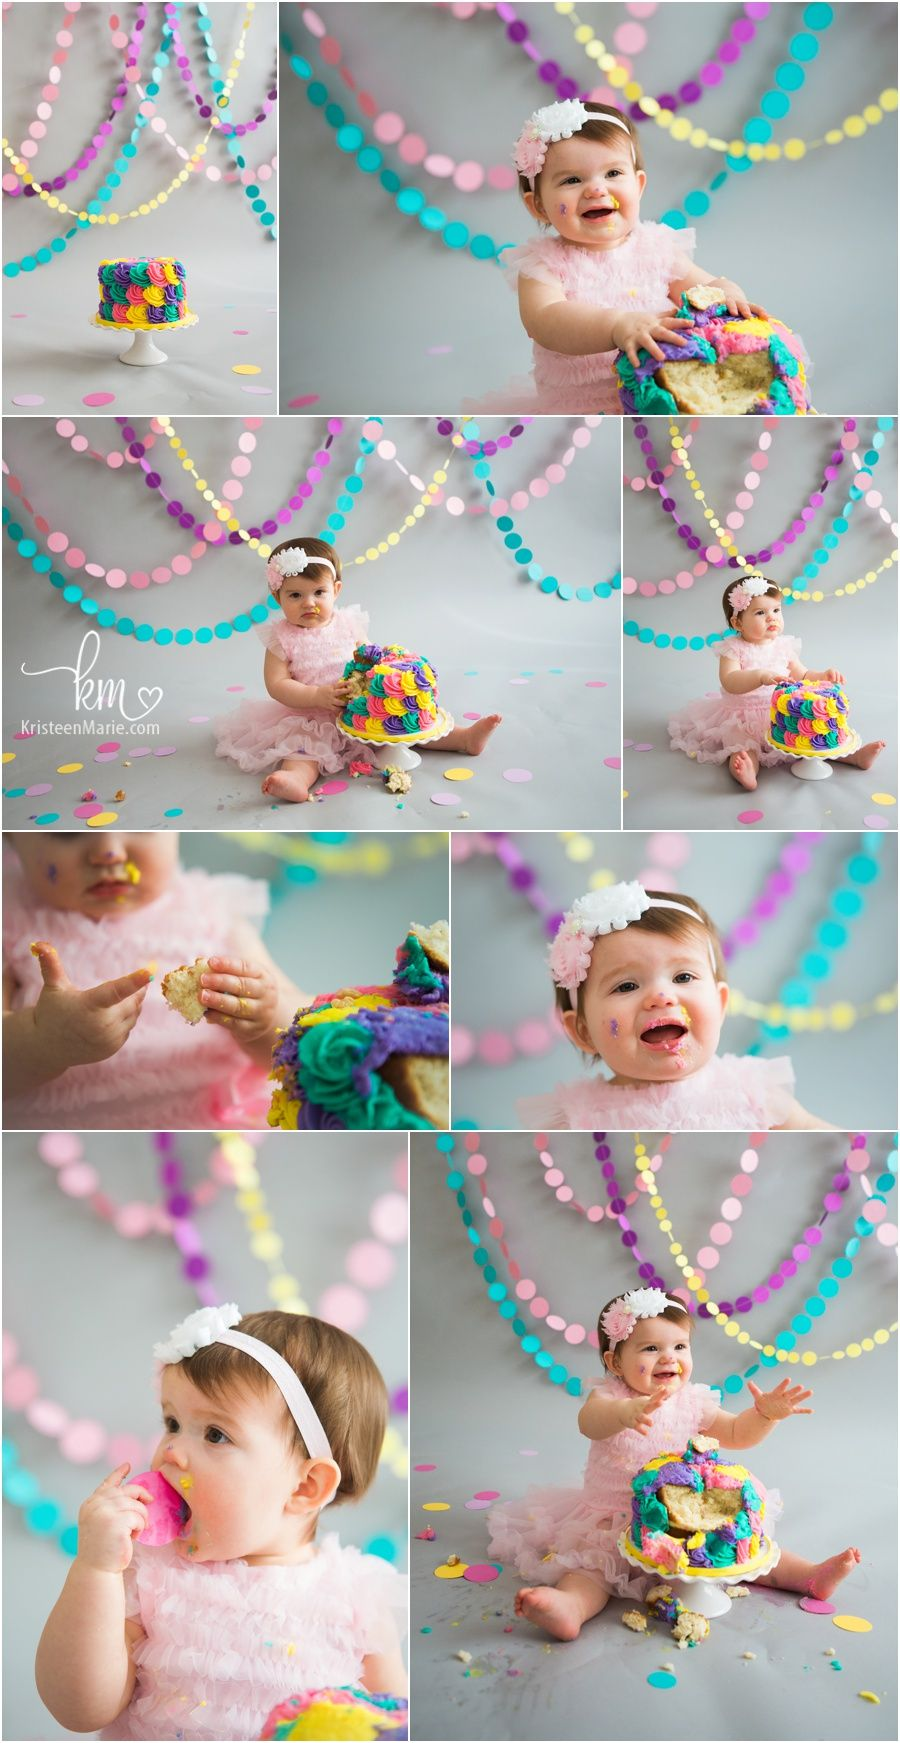 colorful cake smash session - teal, pink, yellow, and purple - 1st birthday cake smash for baby's 1st birthday party